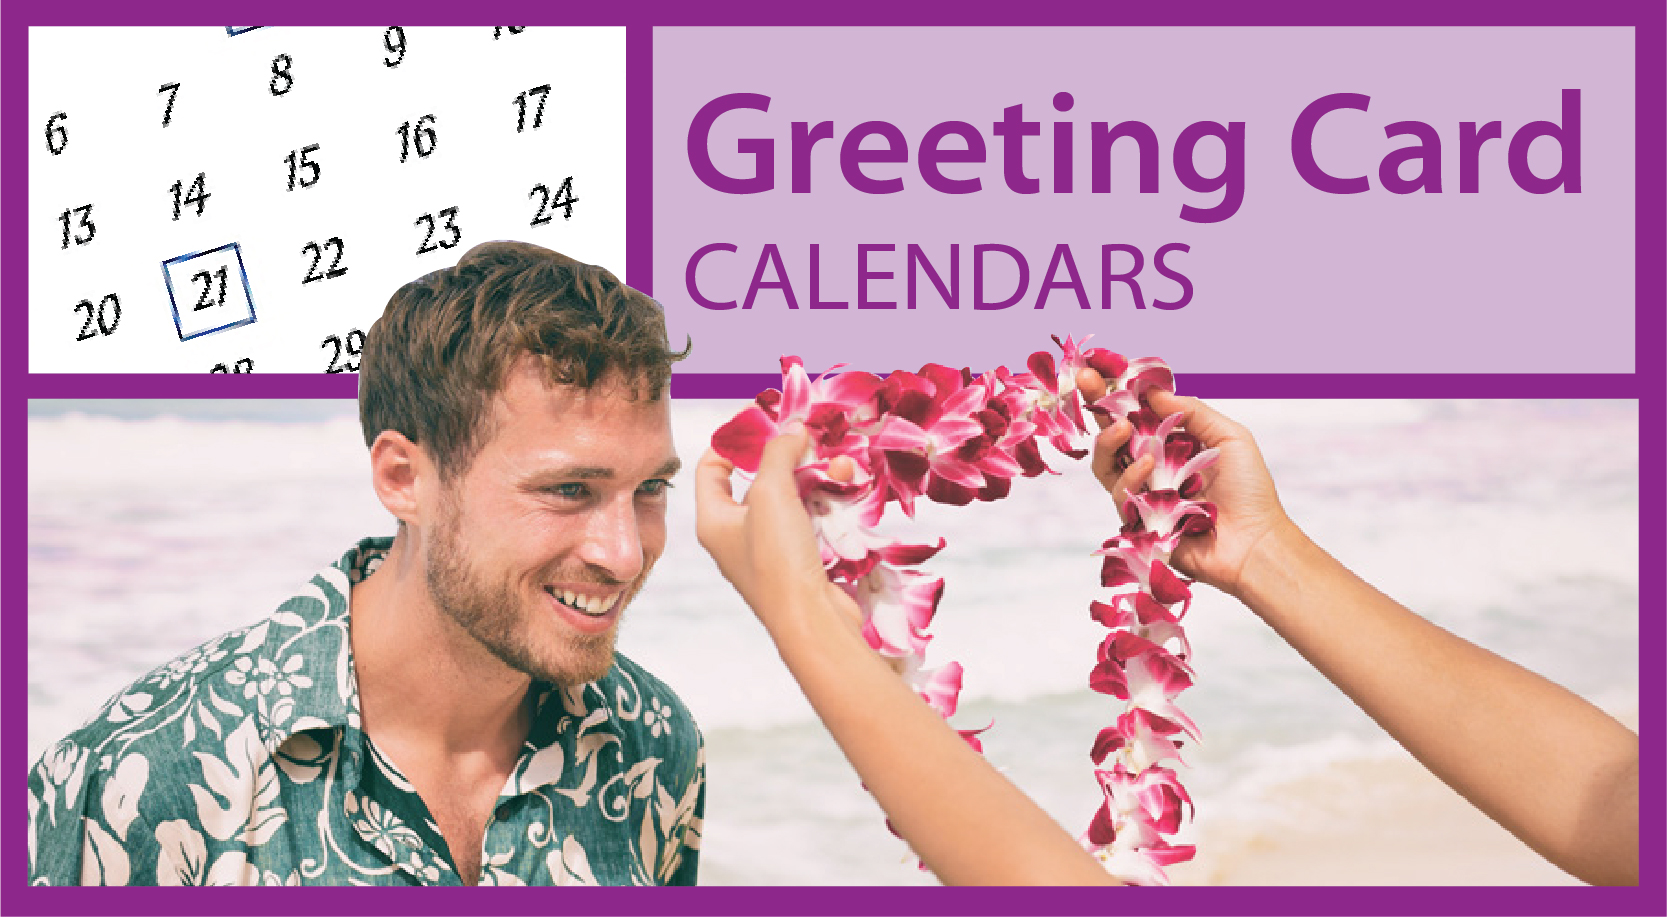 Promotional Greeting Card (Z-Fold) Calendars